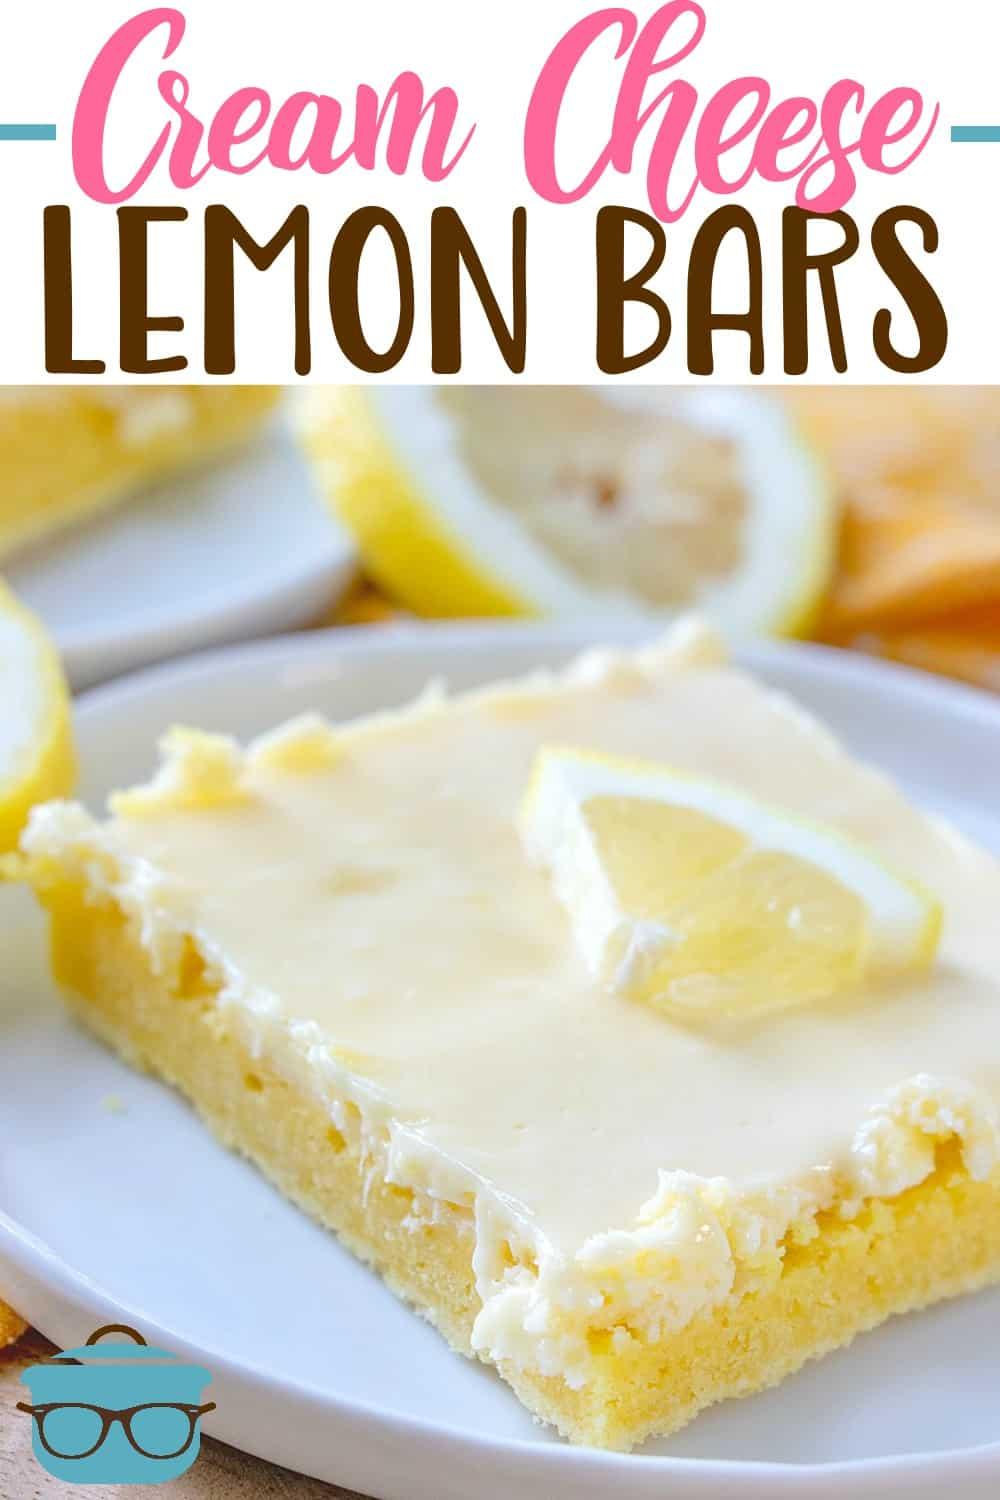 These Cream Cheese Lemon Bars are made with a boxed lemon cake mix topped with a sweet cream cheese and lemon zest flavored layer. #lemonbars #cakemix